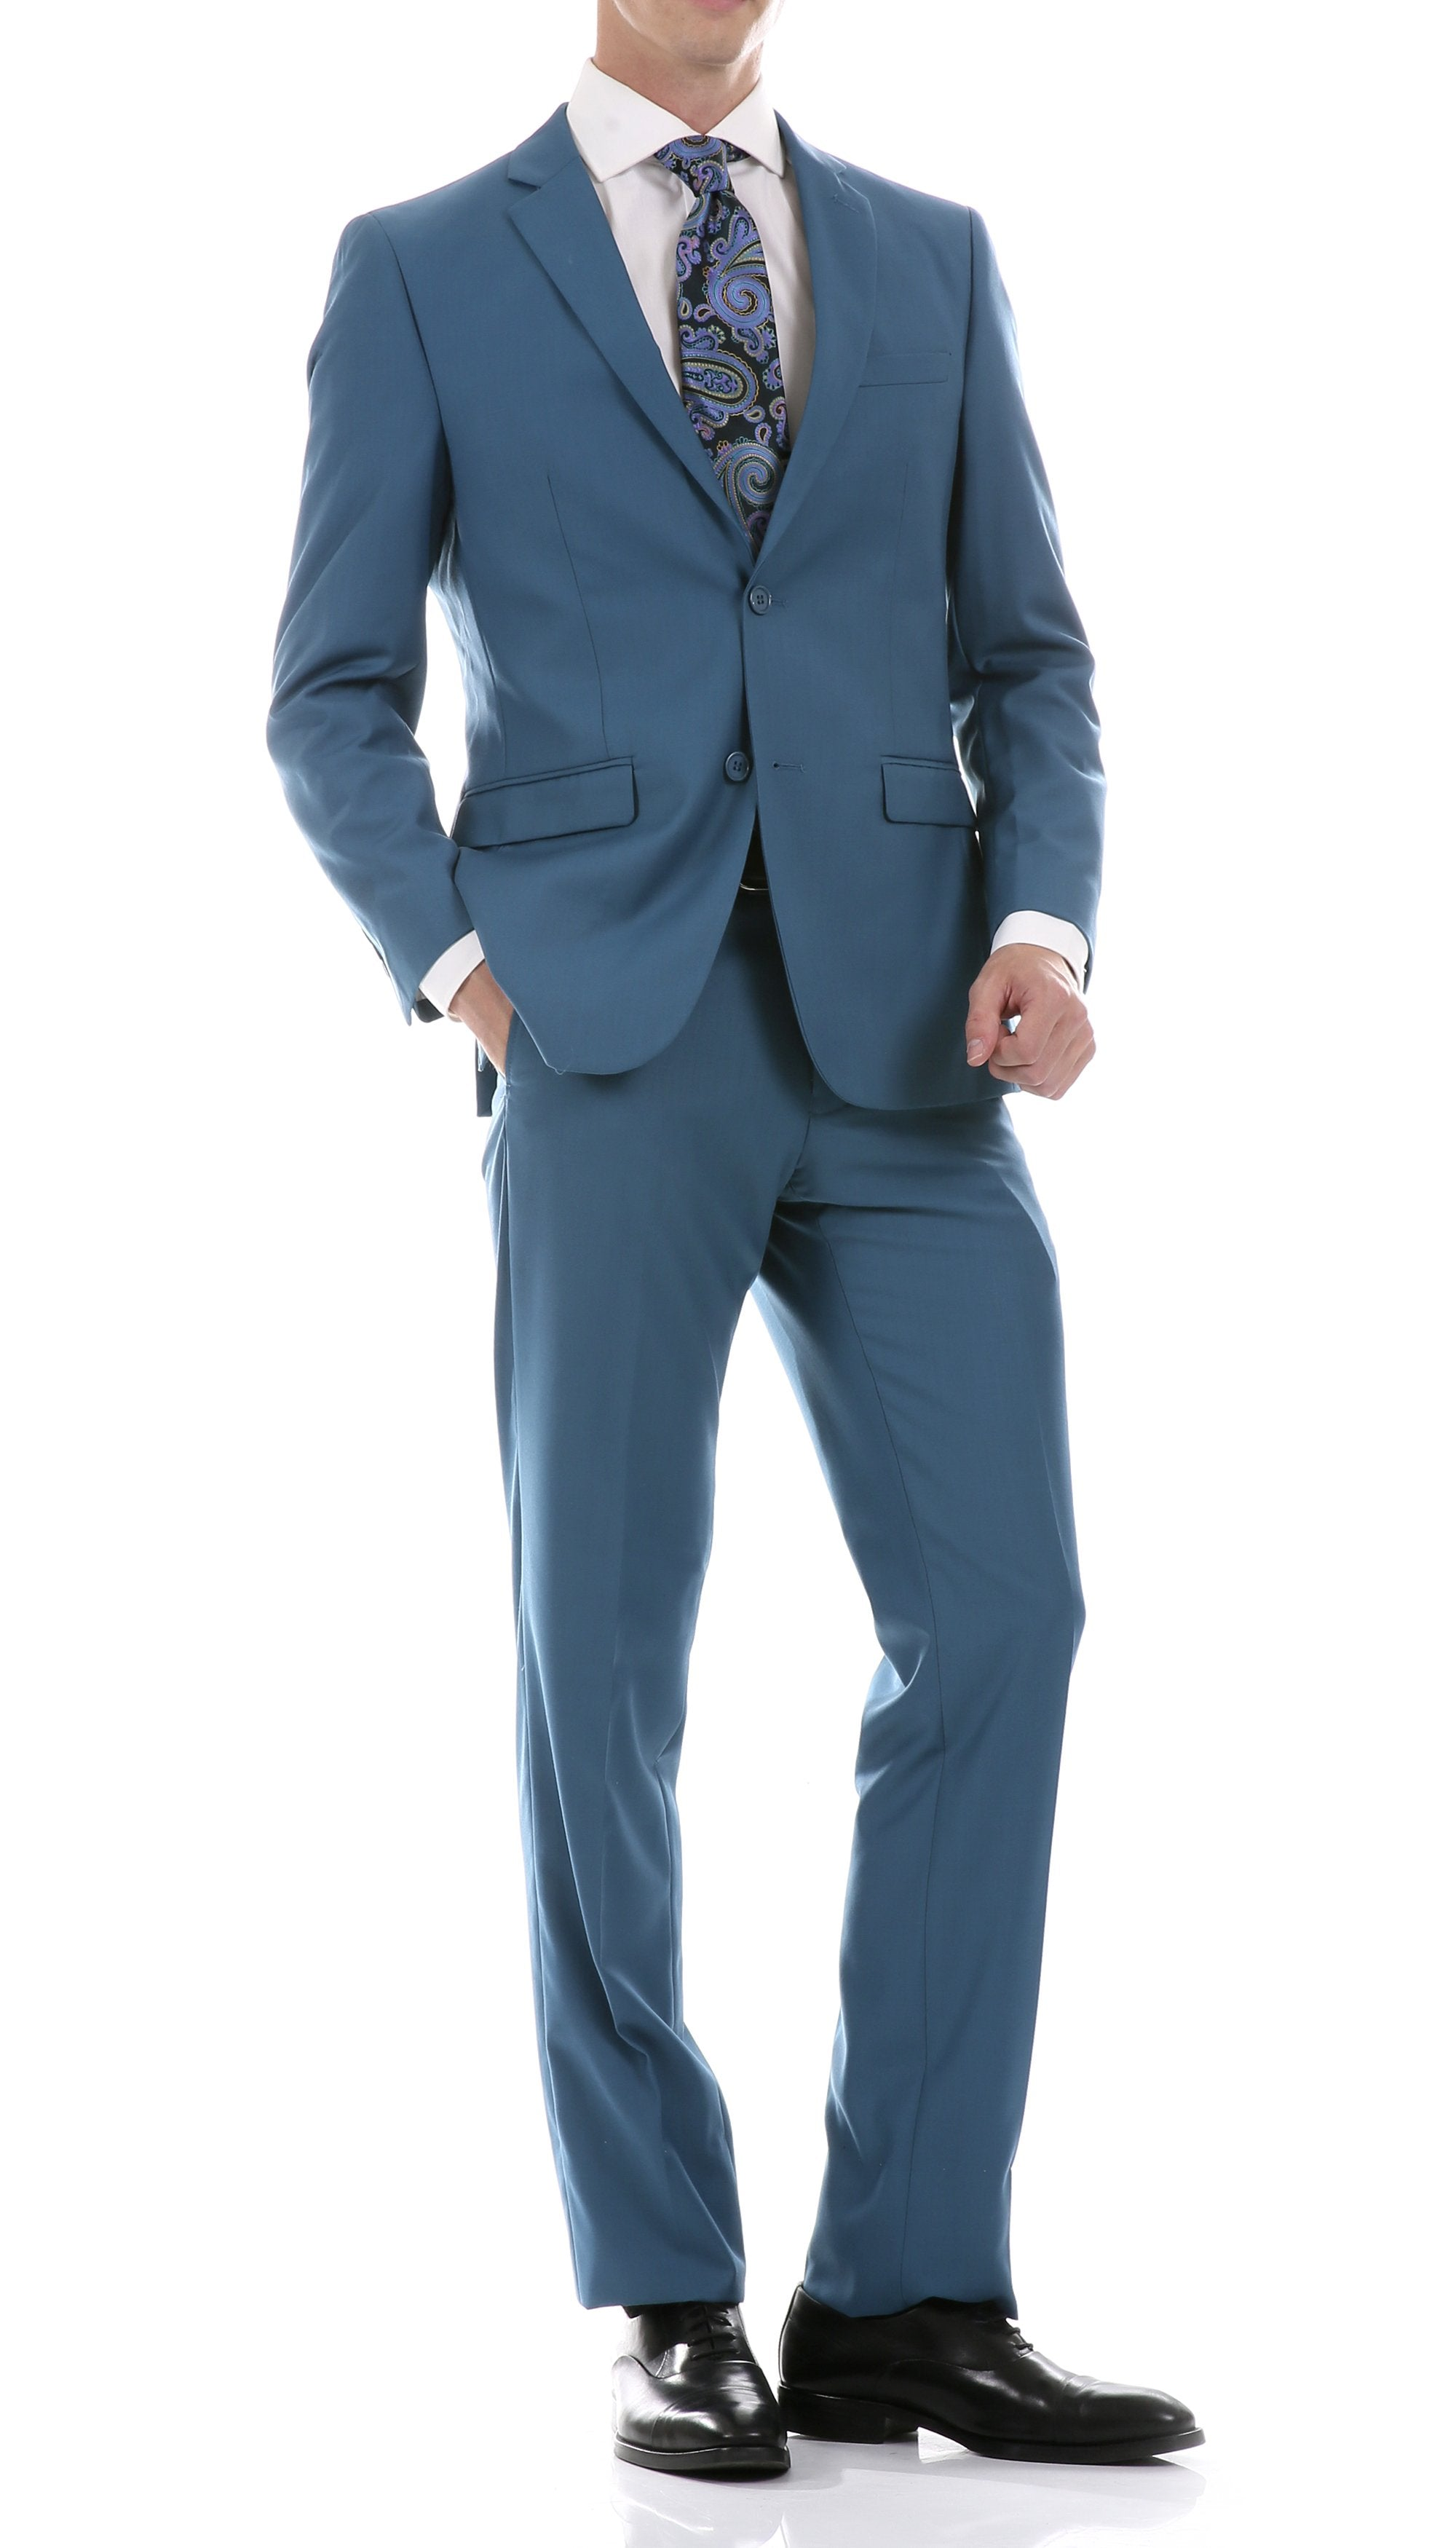 Oslo Teal Slim Fit Notch Lapel 2 Piece Suit - Giorgio's Menswear